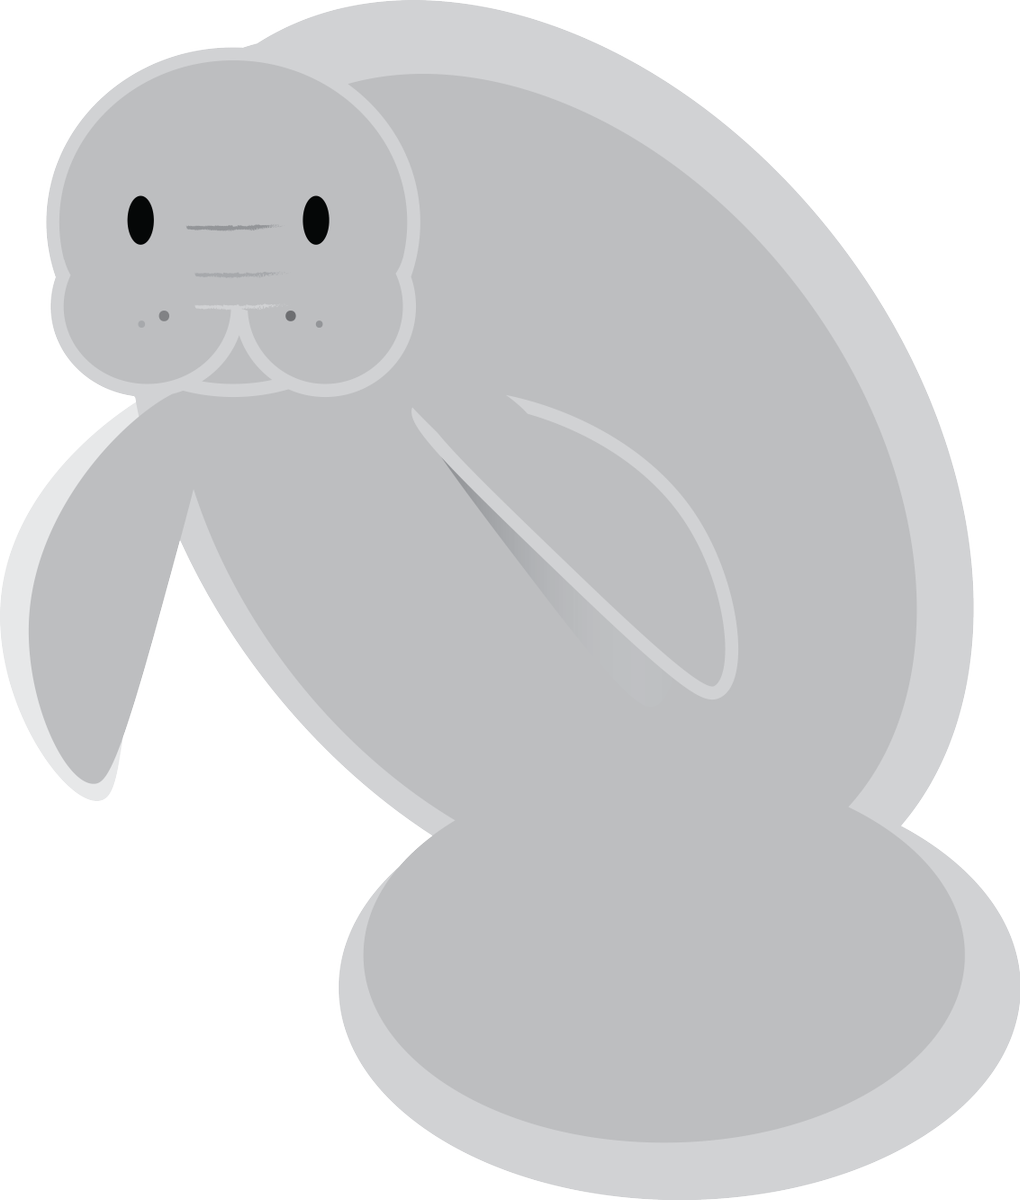 Myfwc on twitter help. Manatee clipart emoji picture library download